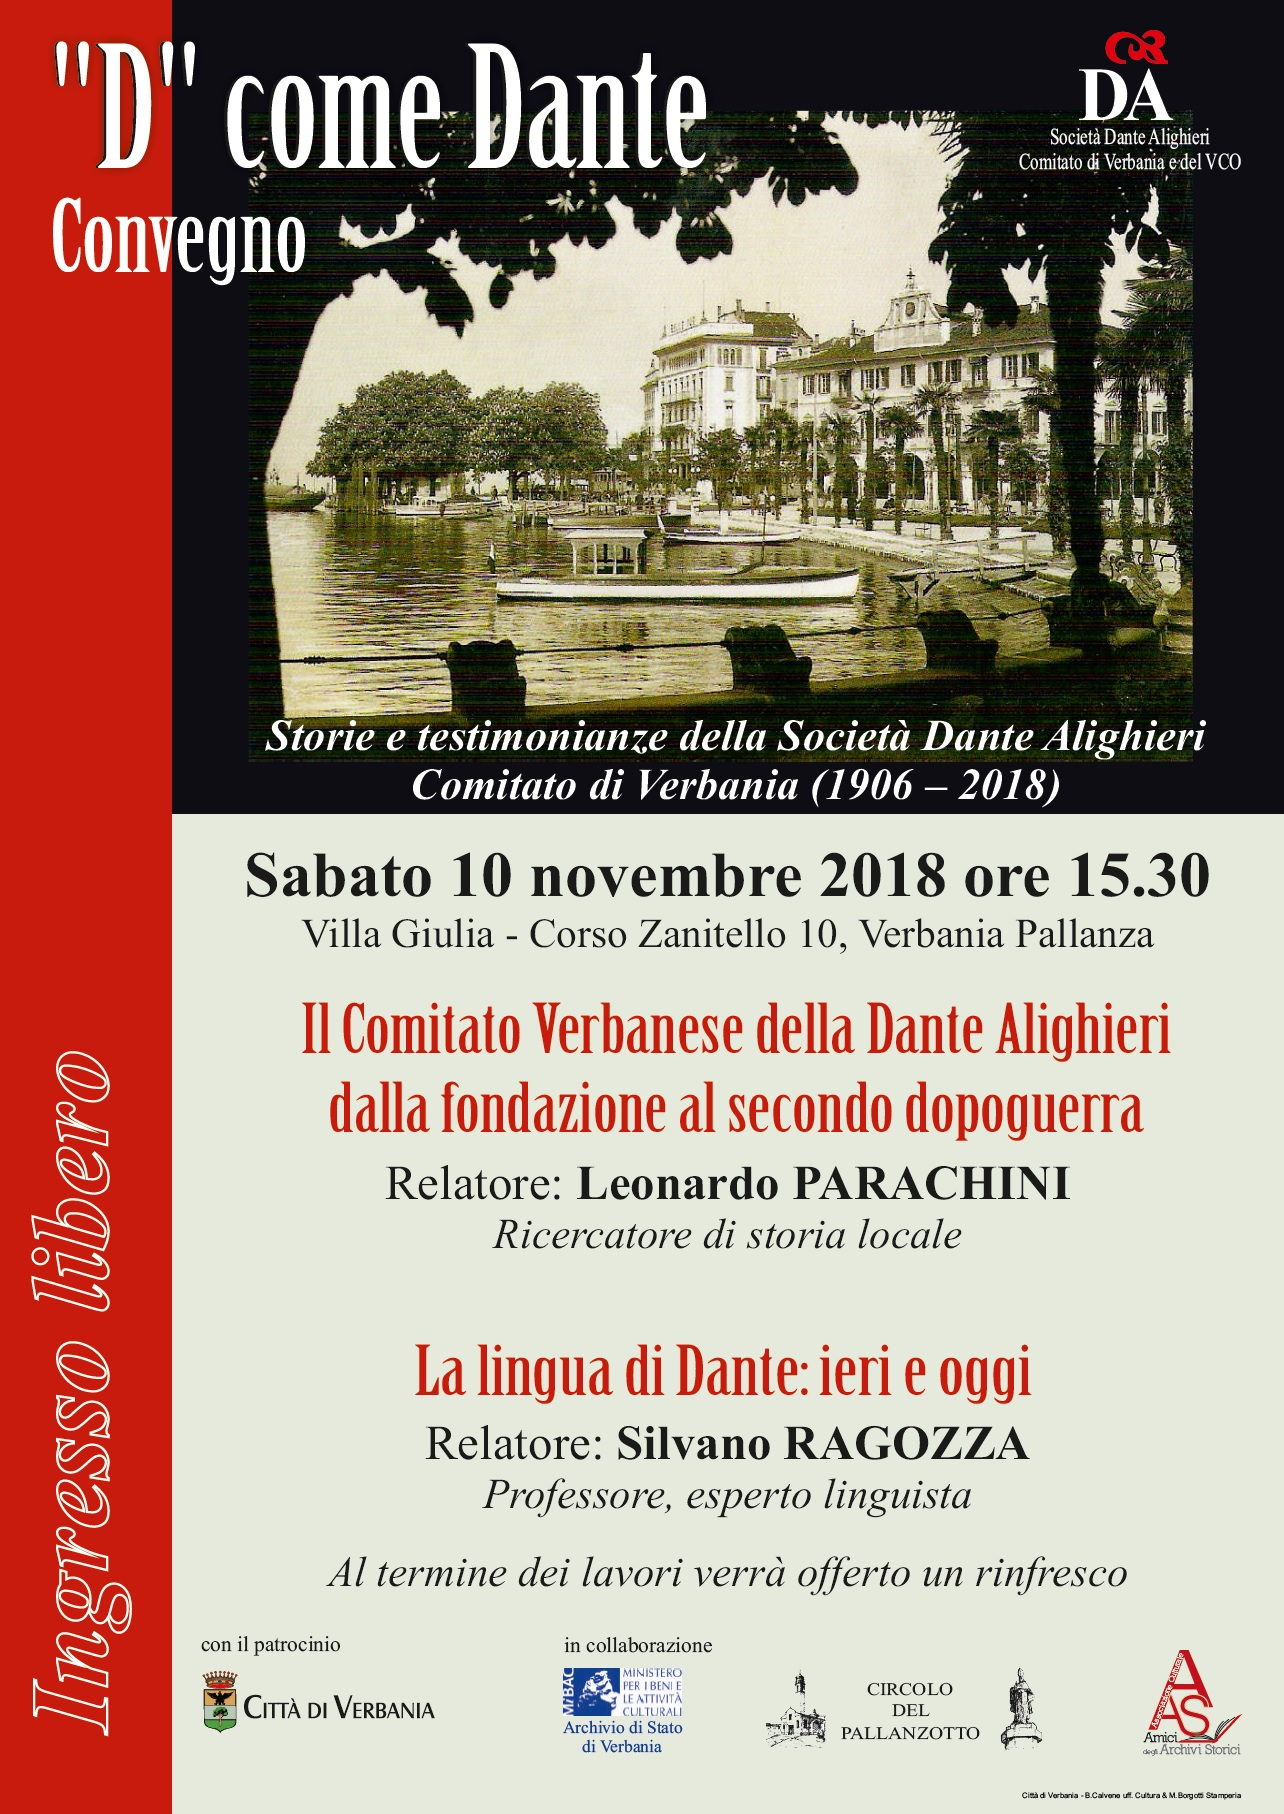 Verbania. D come Dante